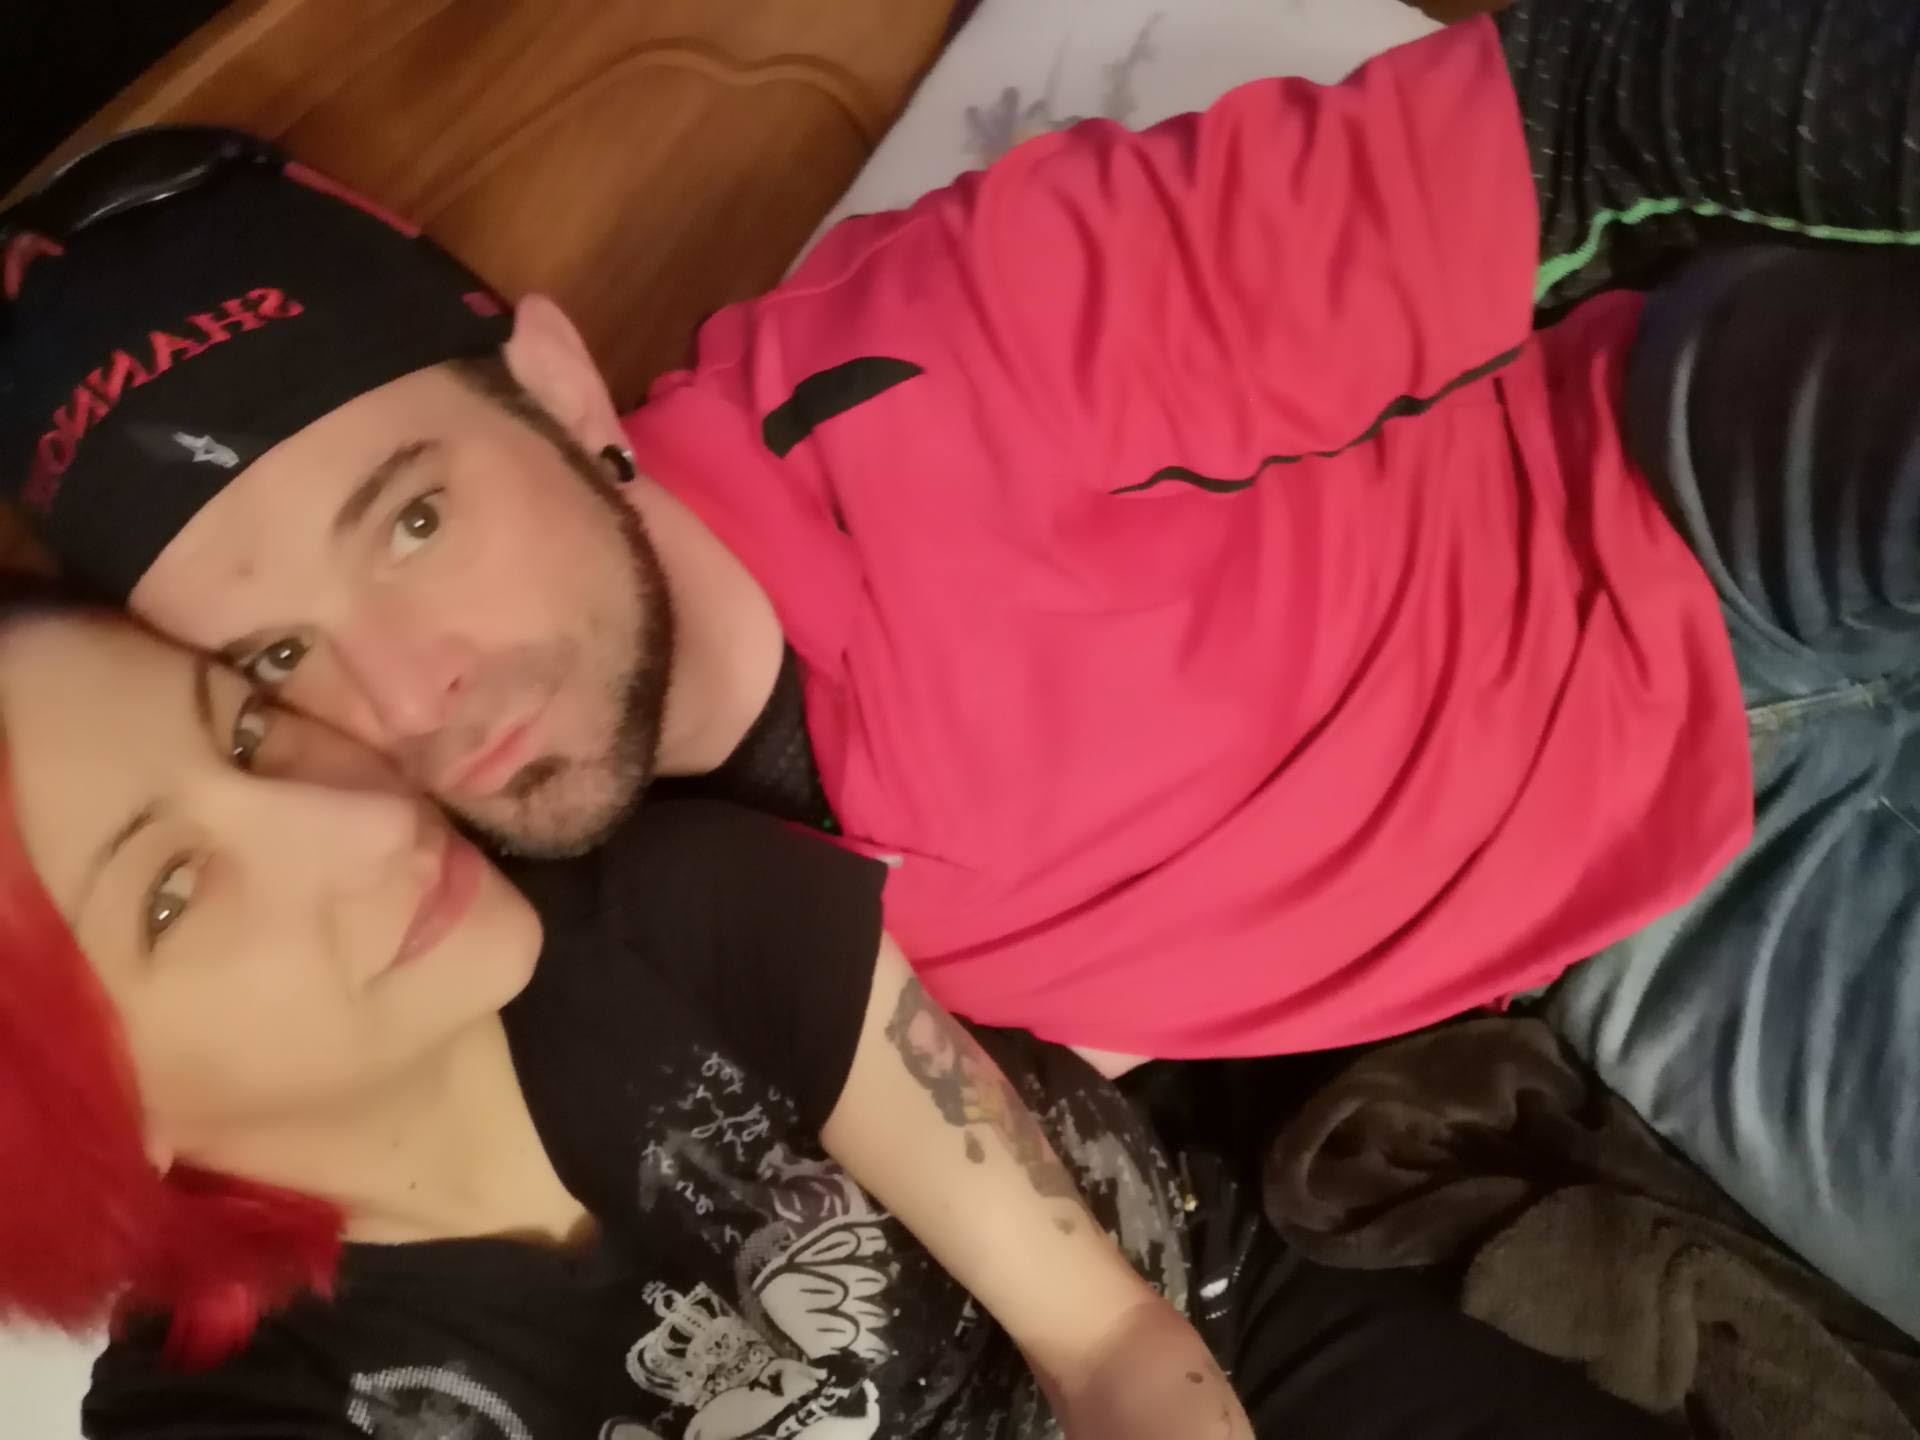 Shannon Harris says he is devastated over the premature loss of his girlfriend, Shannon Fleming of St. John's. (Submitted by Shannon Harris)